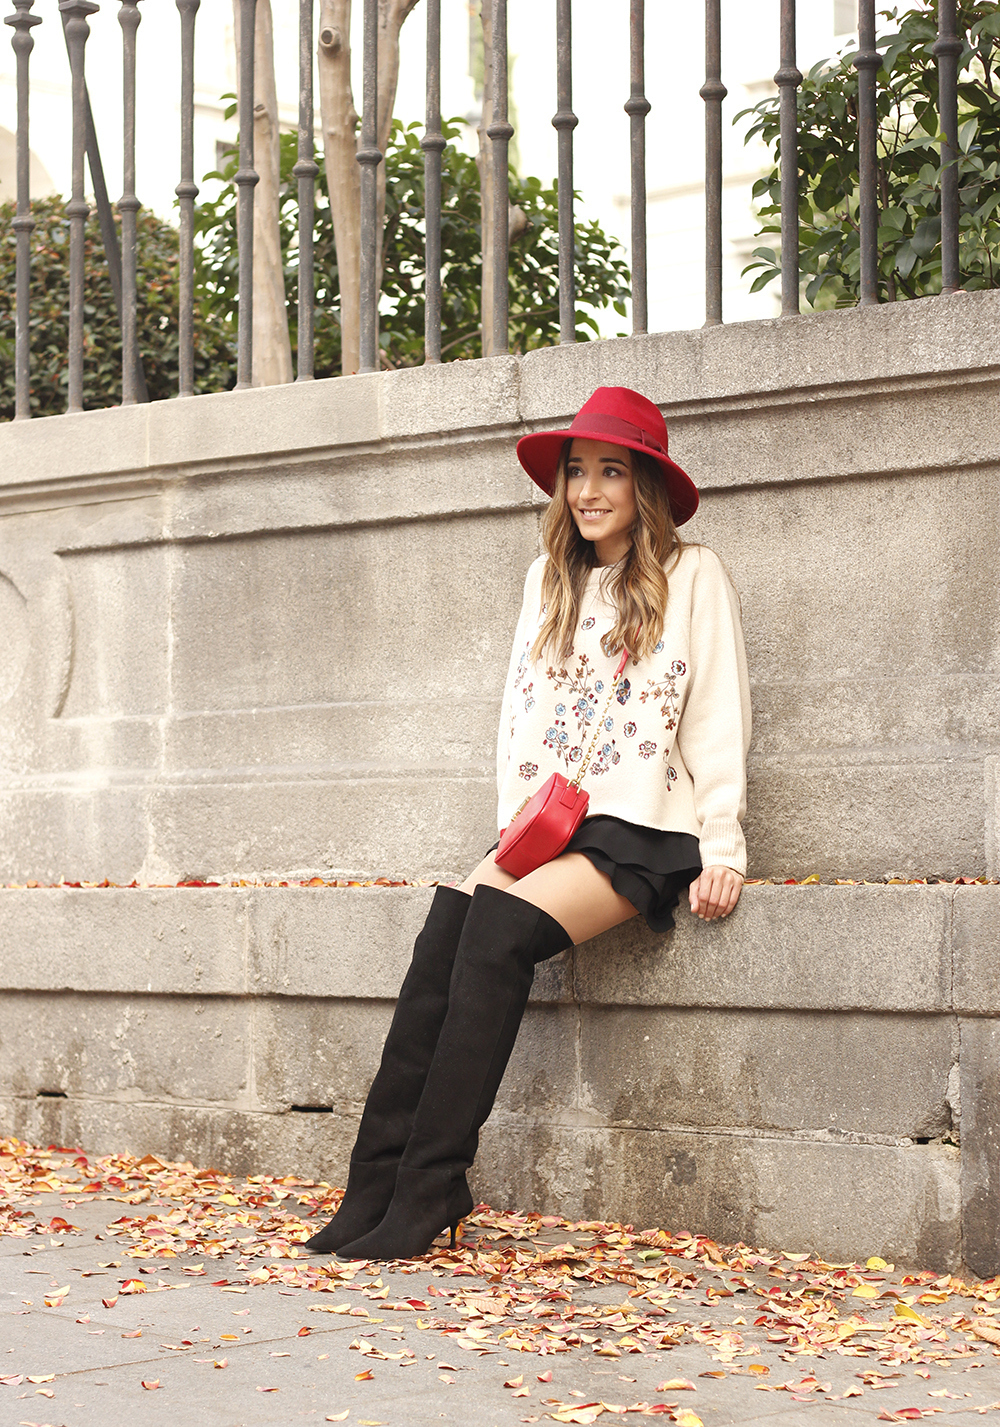 beige jersey with embroidered flowers over the knee black boots red hat street style fashion inspiration outfit08